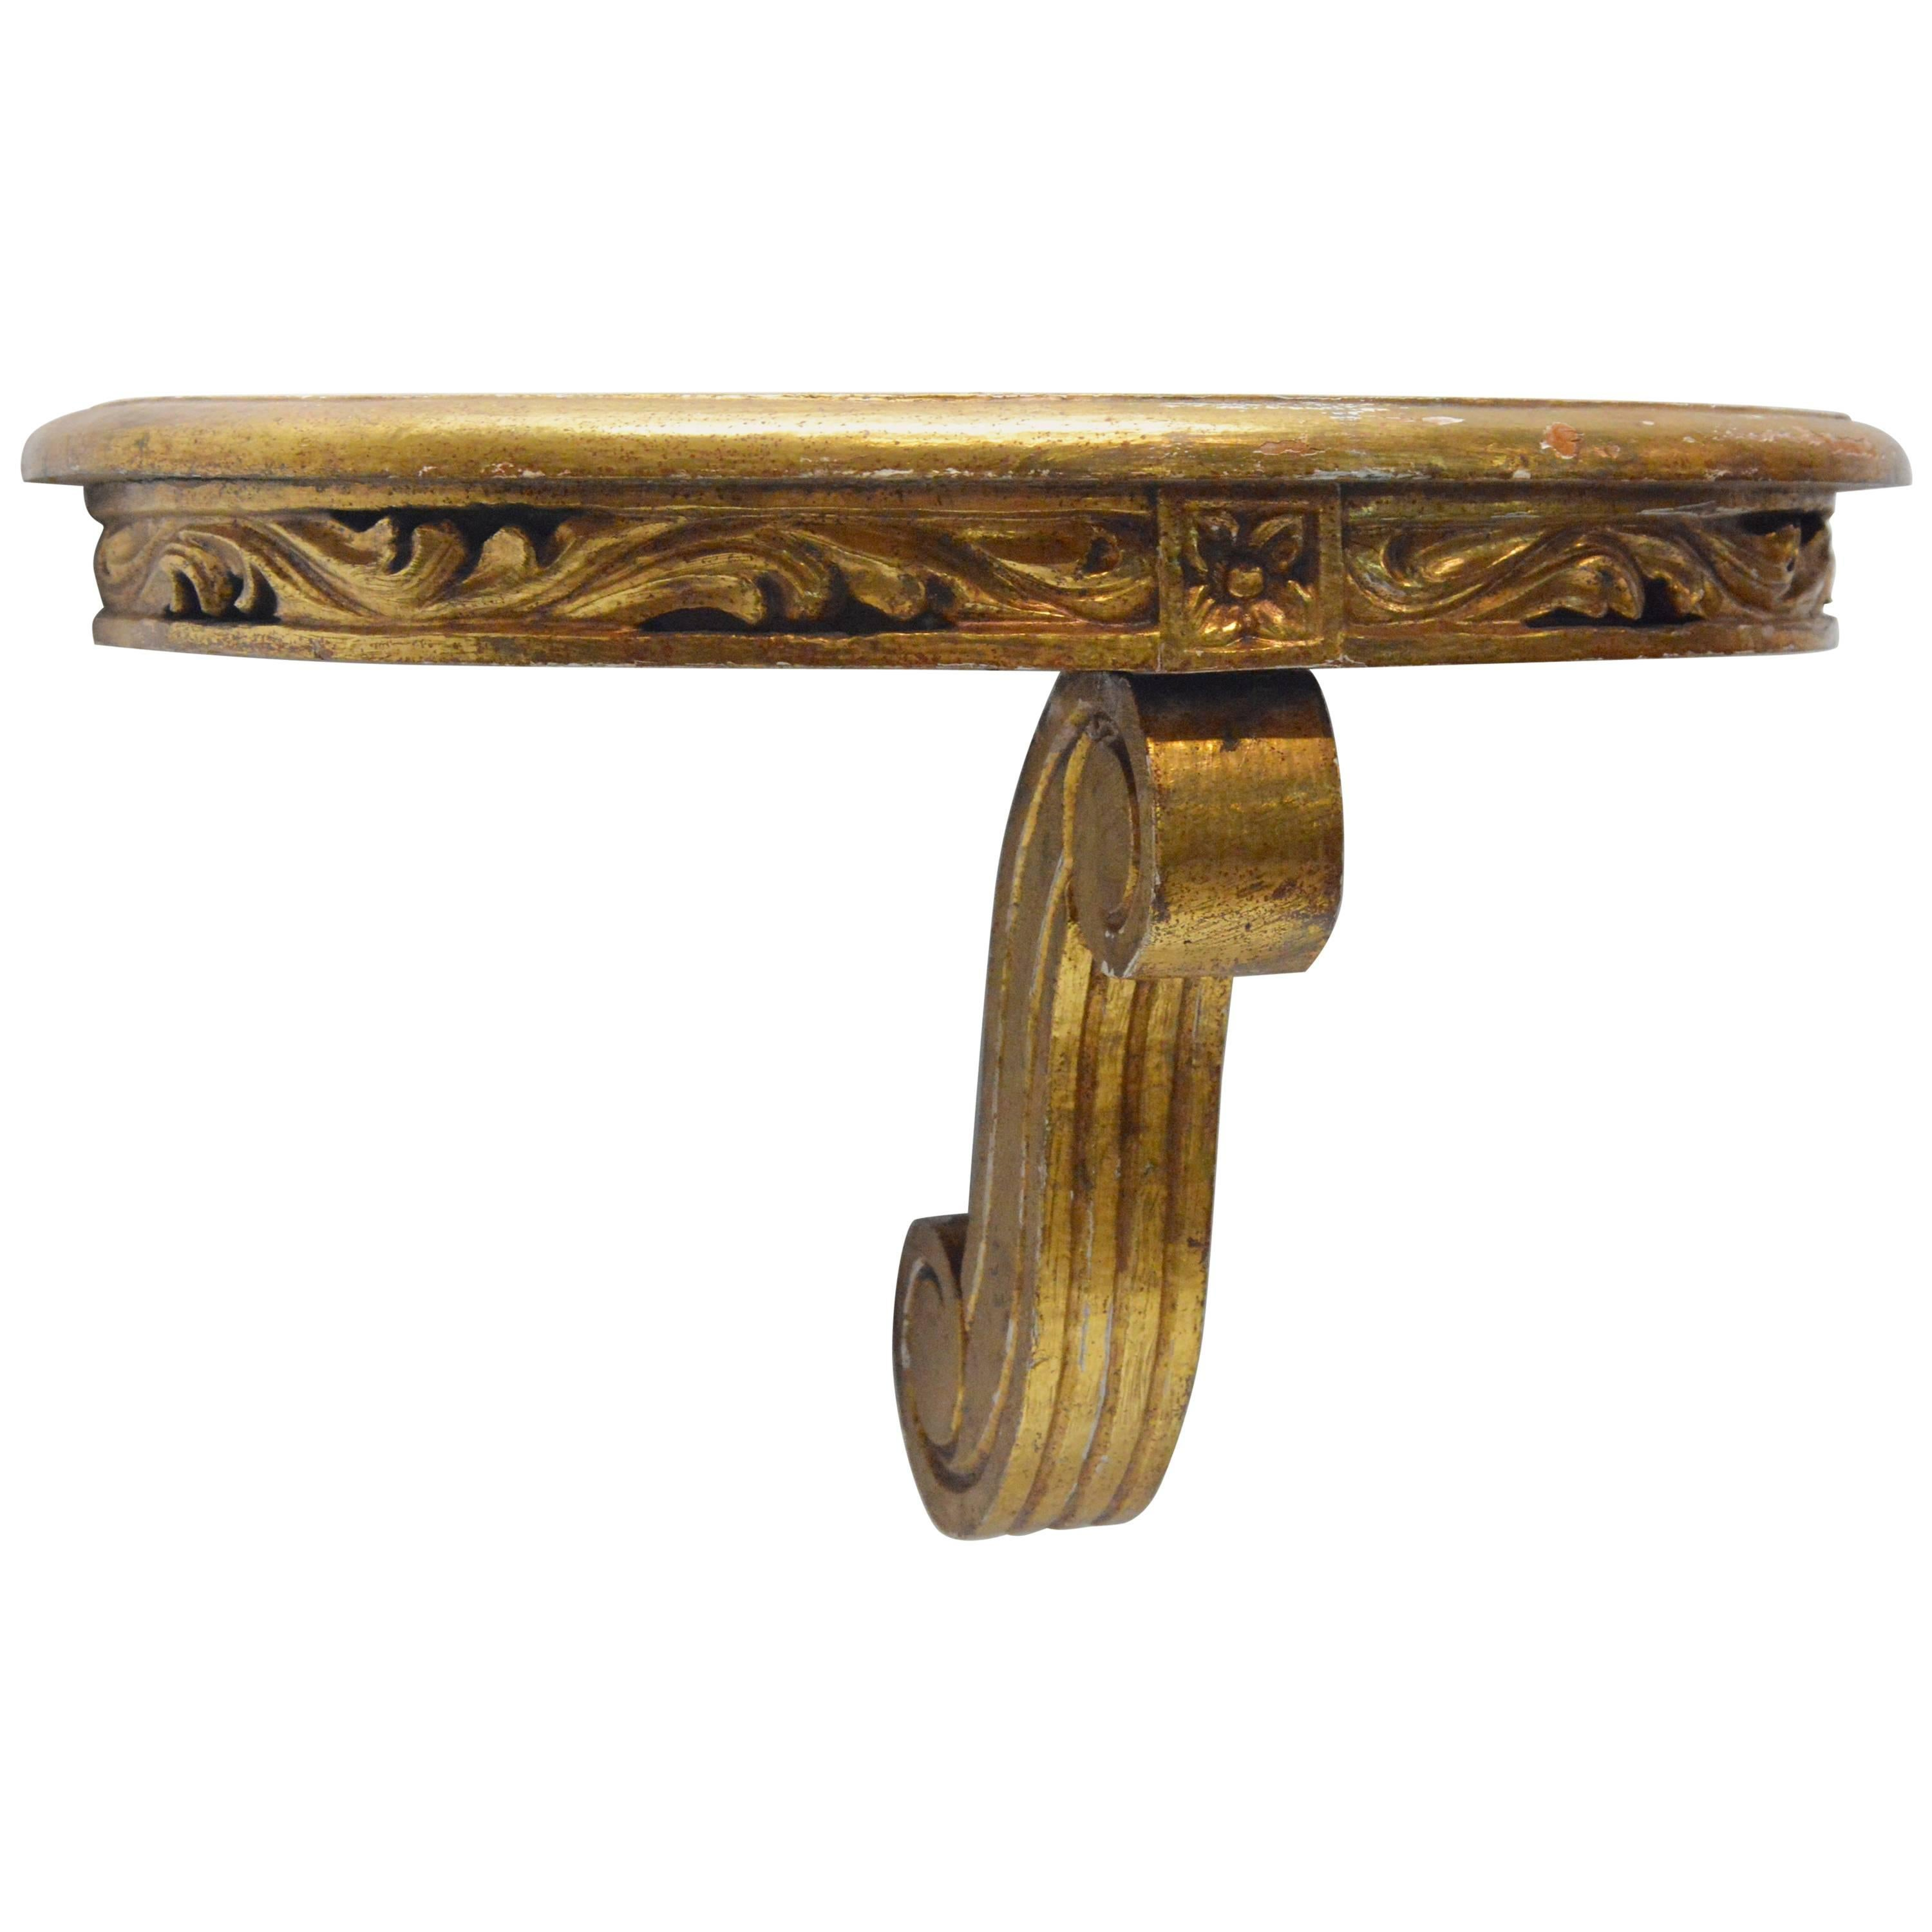 Ordinaire Carved Giltwood Wall Mount Console Shelf